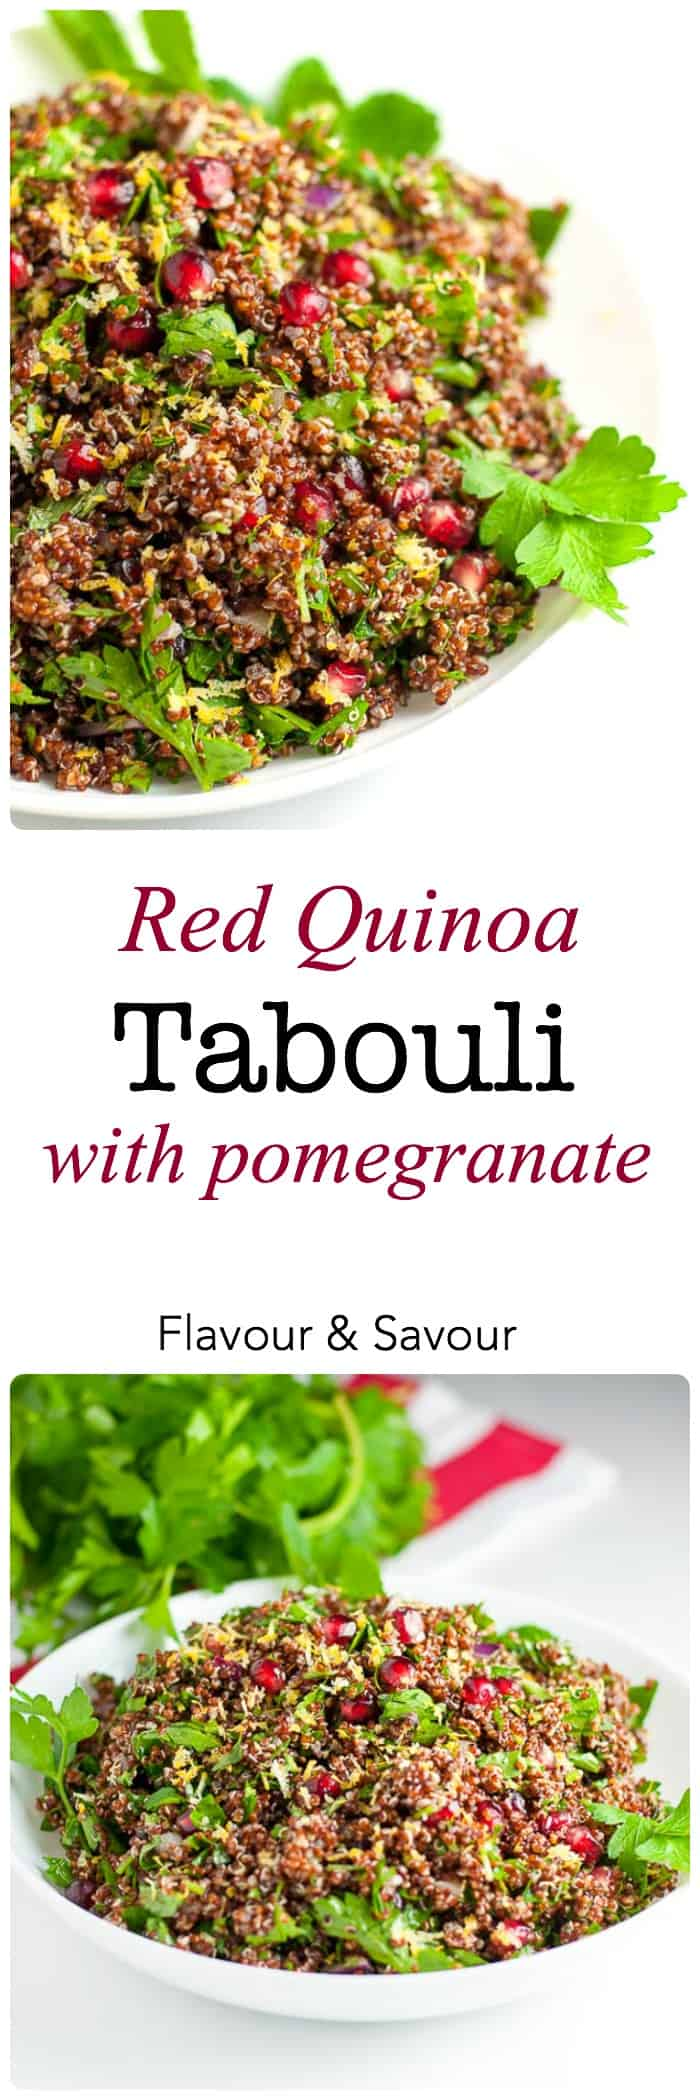 Red Quinoa Tabouli with Pomegranate |www.flavourandsavour.com